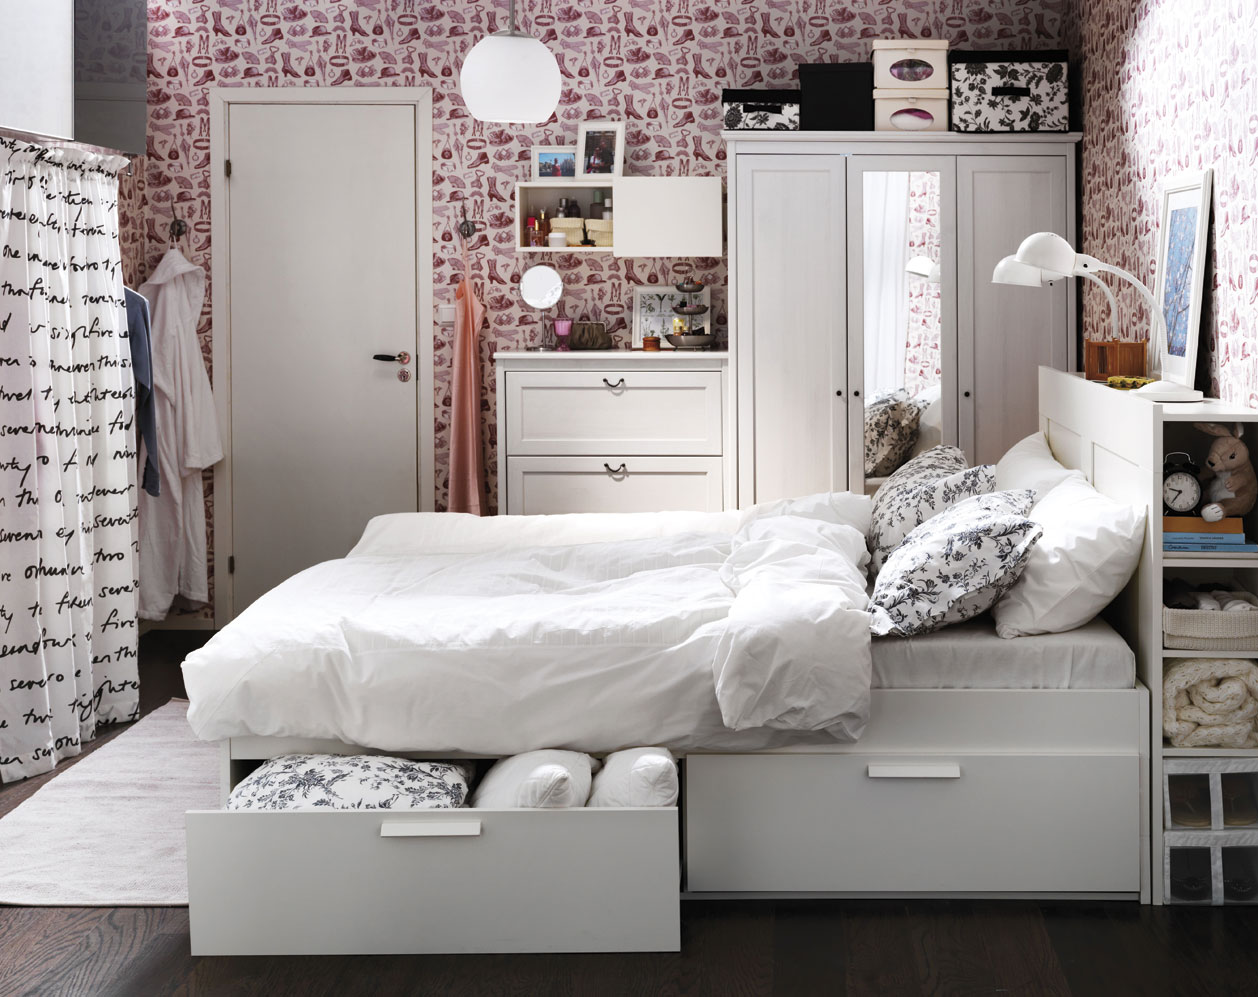 novedades ikea 2012 dormitorios im genes de ambientes. Black Bedroom Furniture Sets. Home Design Ideas